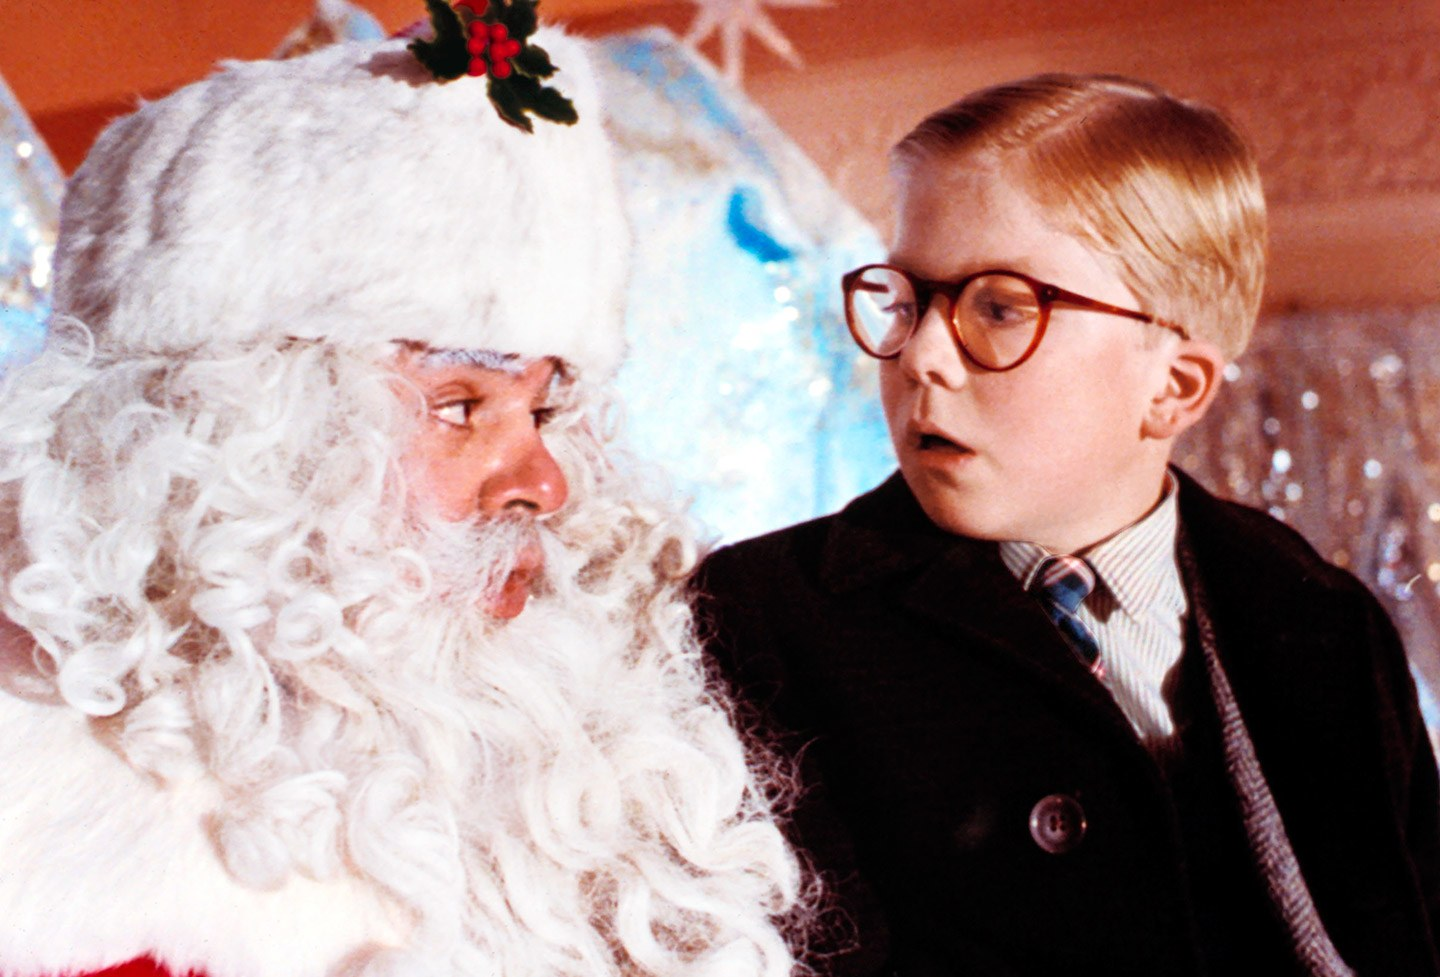 boy with glasses sitting on Santa's lap from A Christmas Story movie